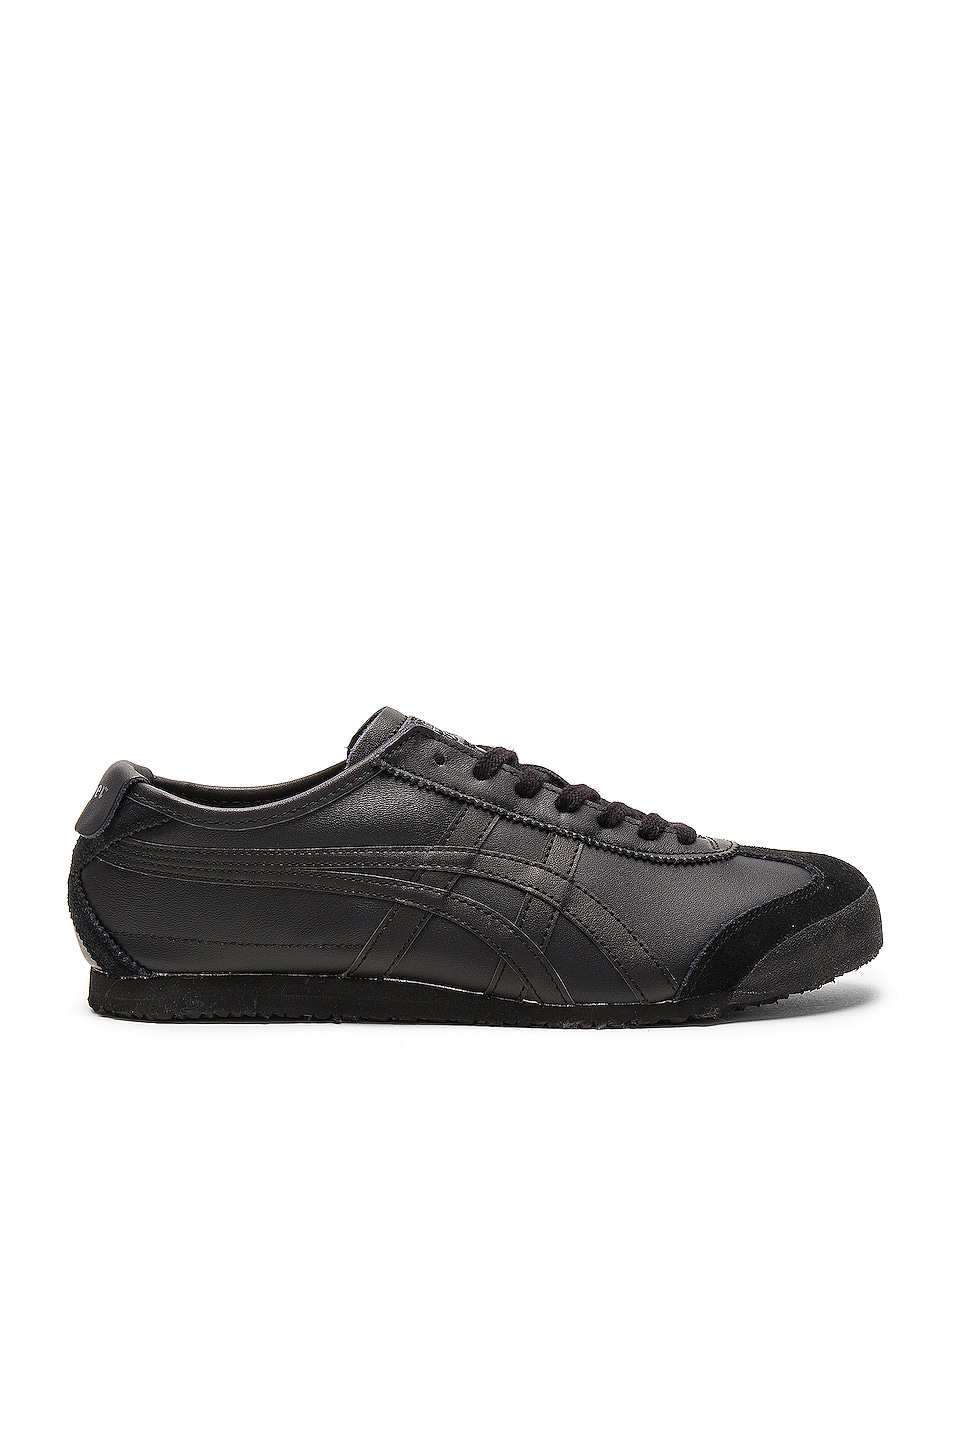 Image 1 of Onitsuka Tiger Mexico 66 in Black & Black